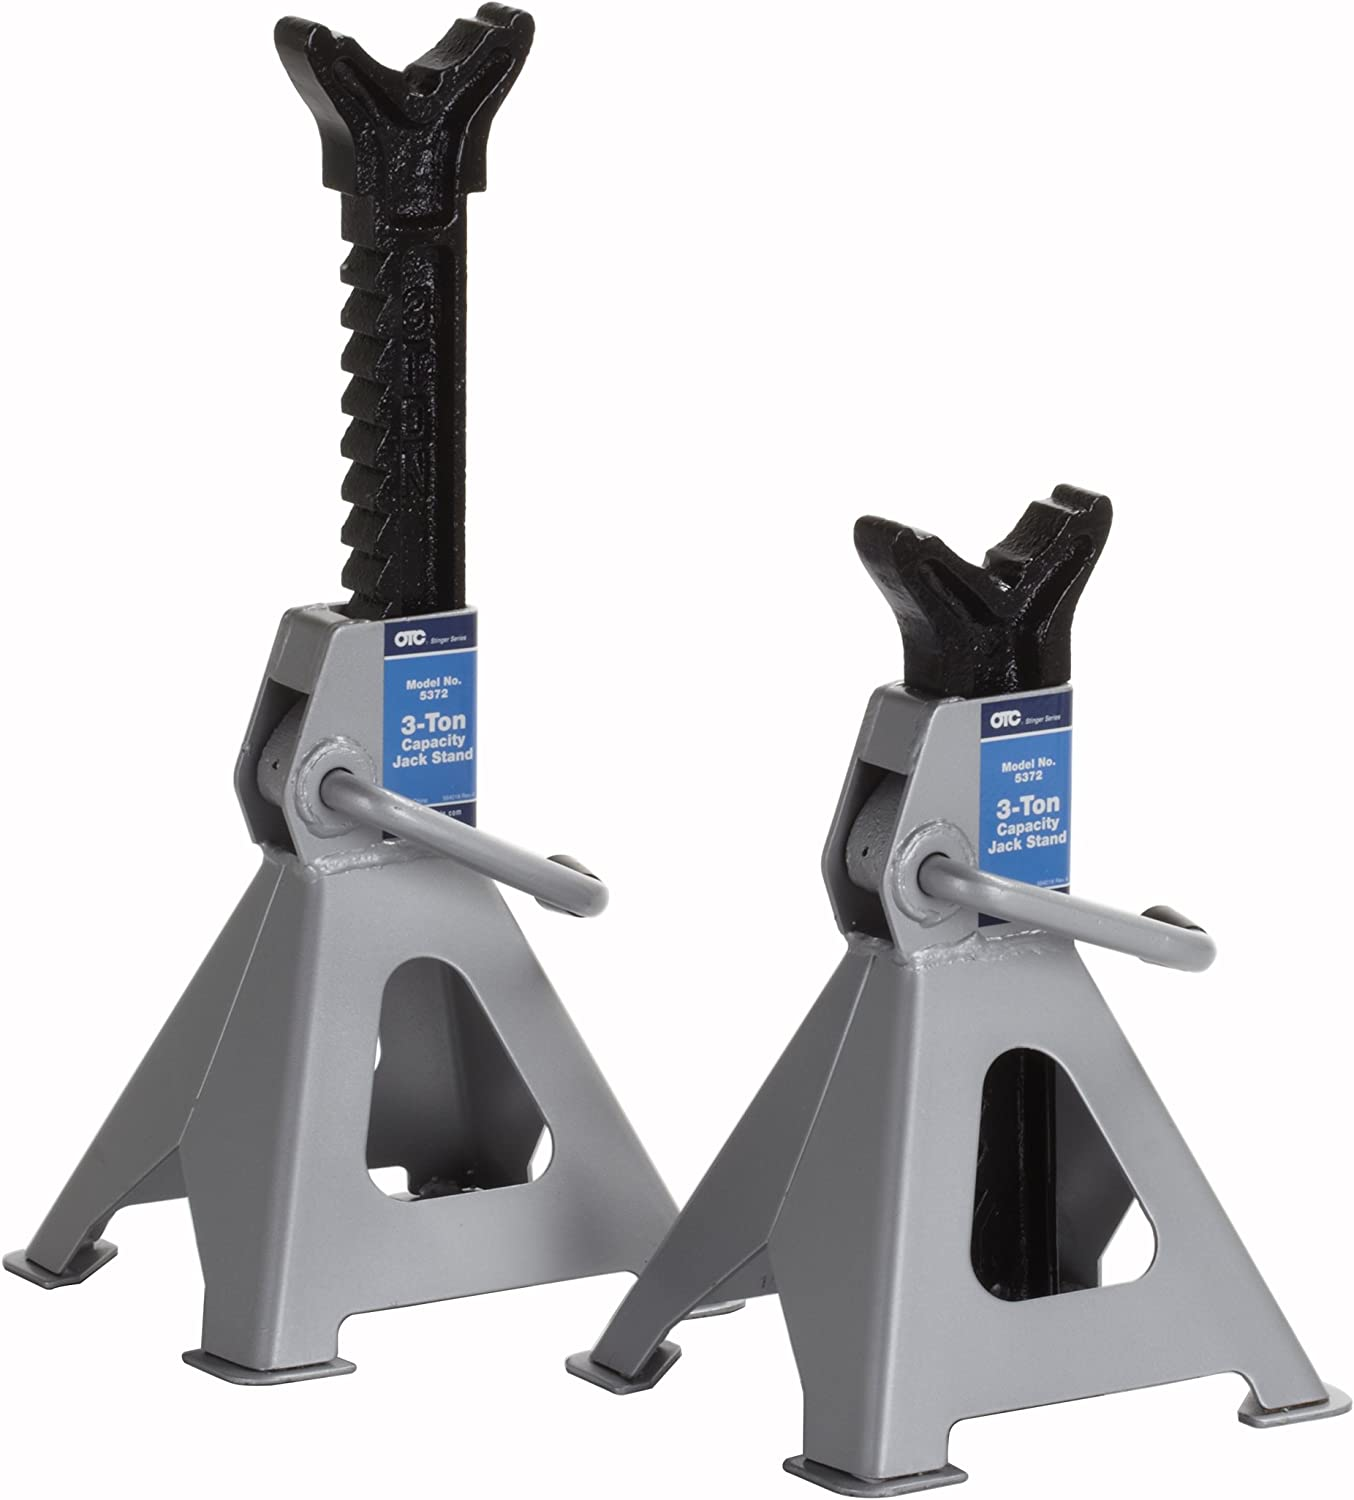 OTC Stinger 3 Ton Jack Stands - Pair